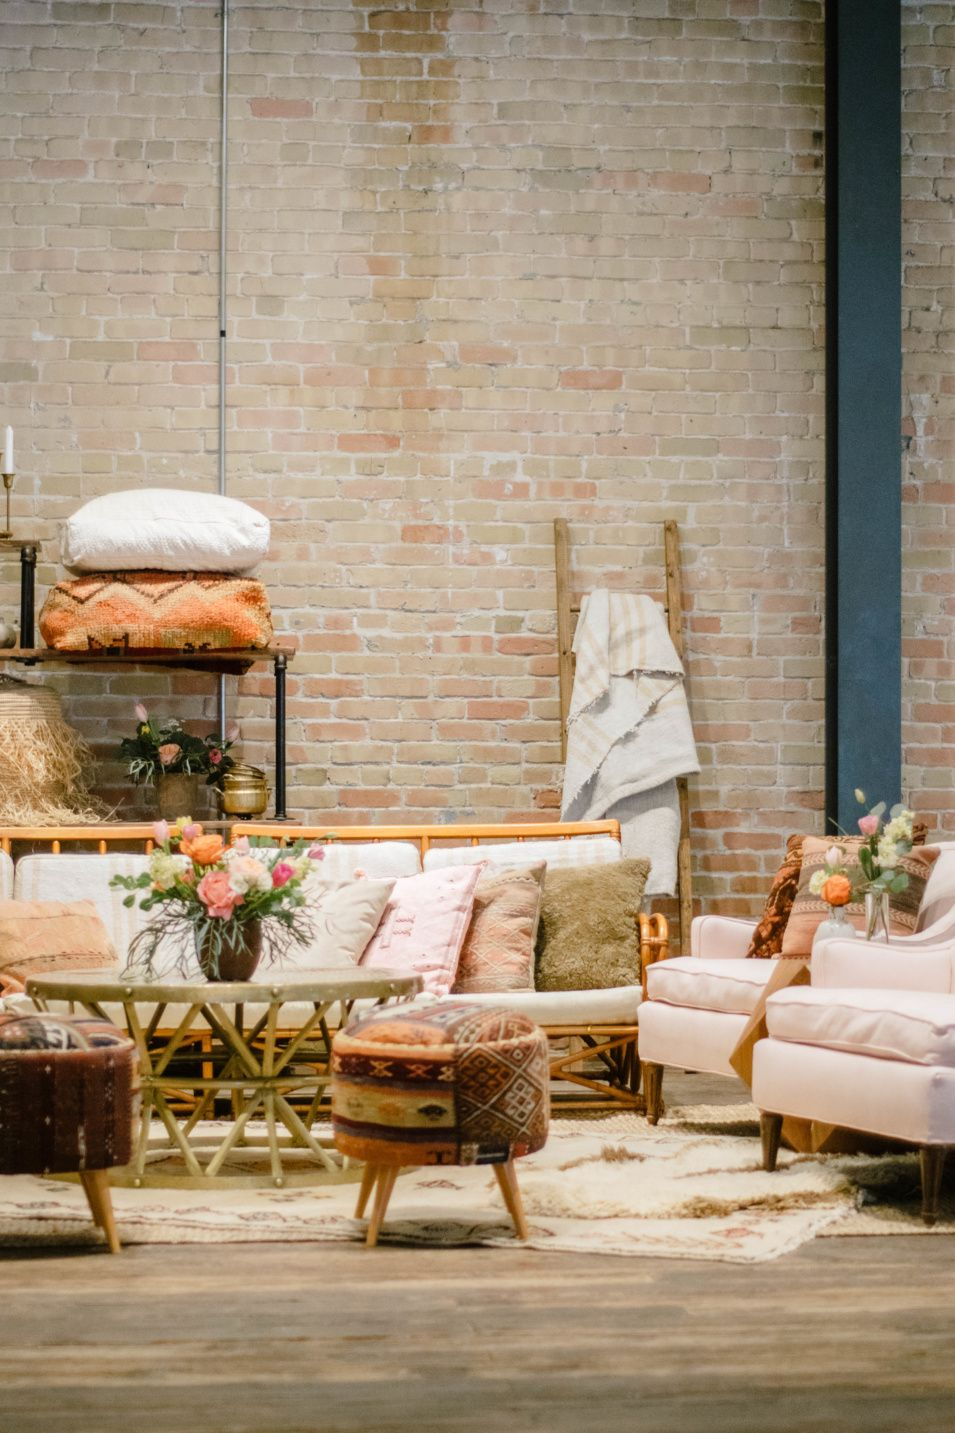 4 Ways To Add Texture In A Lounge Vintage Industrial Decor